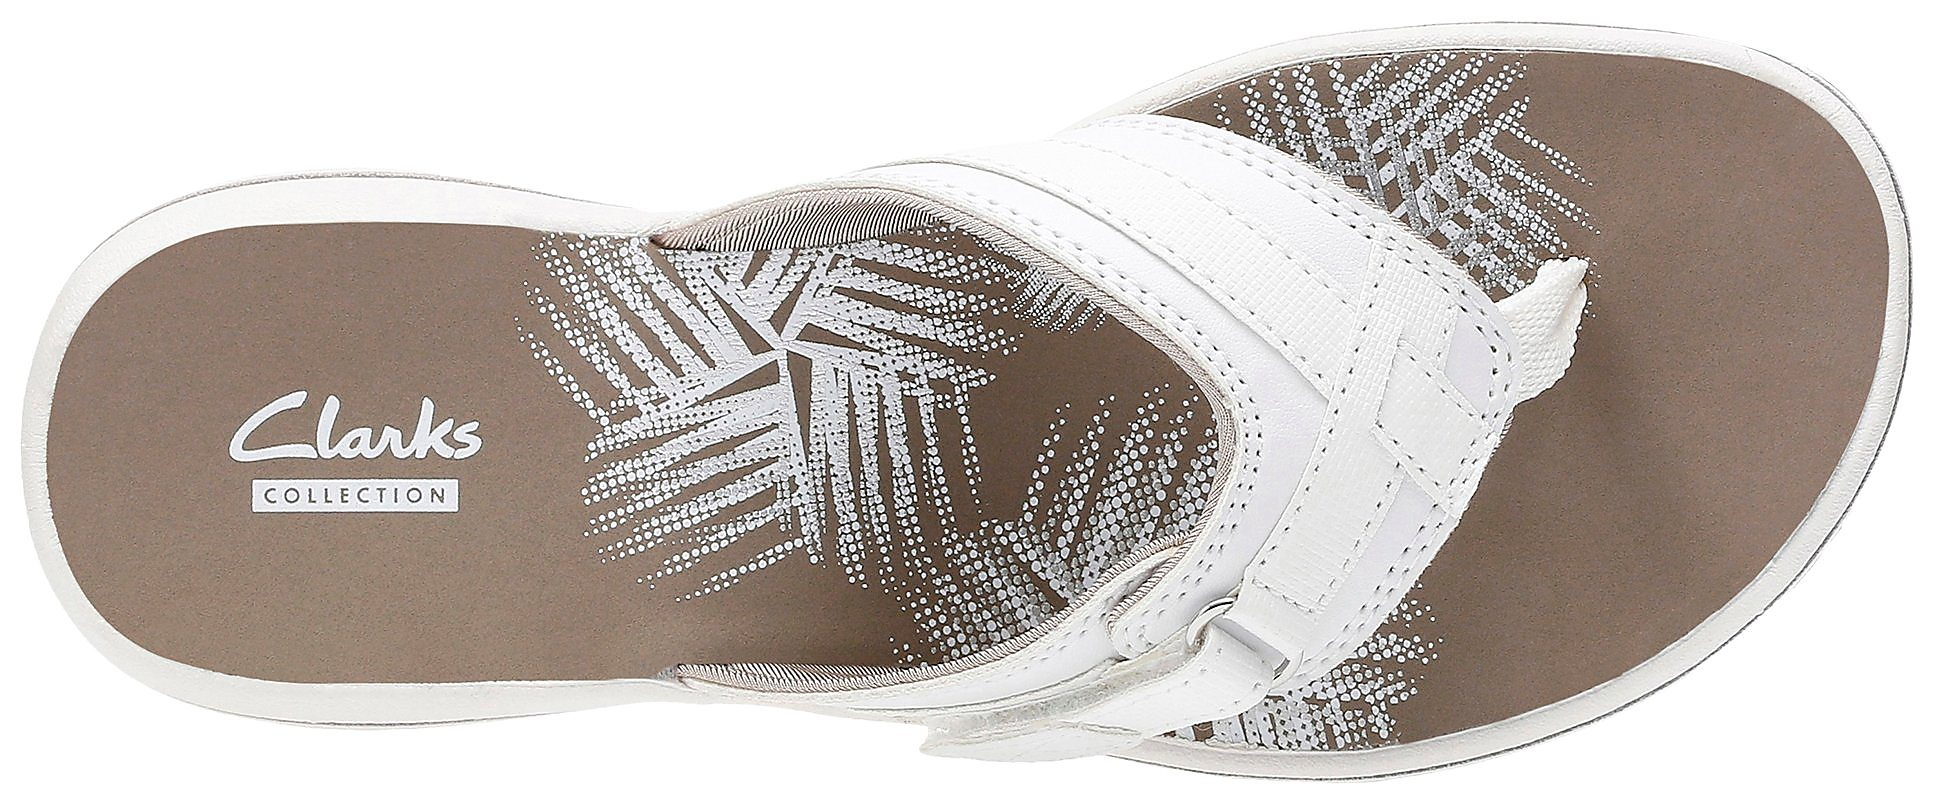 Clarks-Womens-Breeze-Sea-Flip-Flops-Comfort-Summer-Sandals thumbnail 36